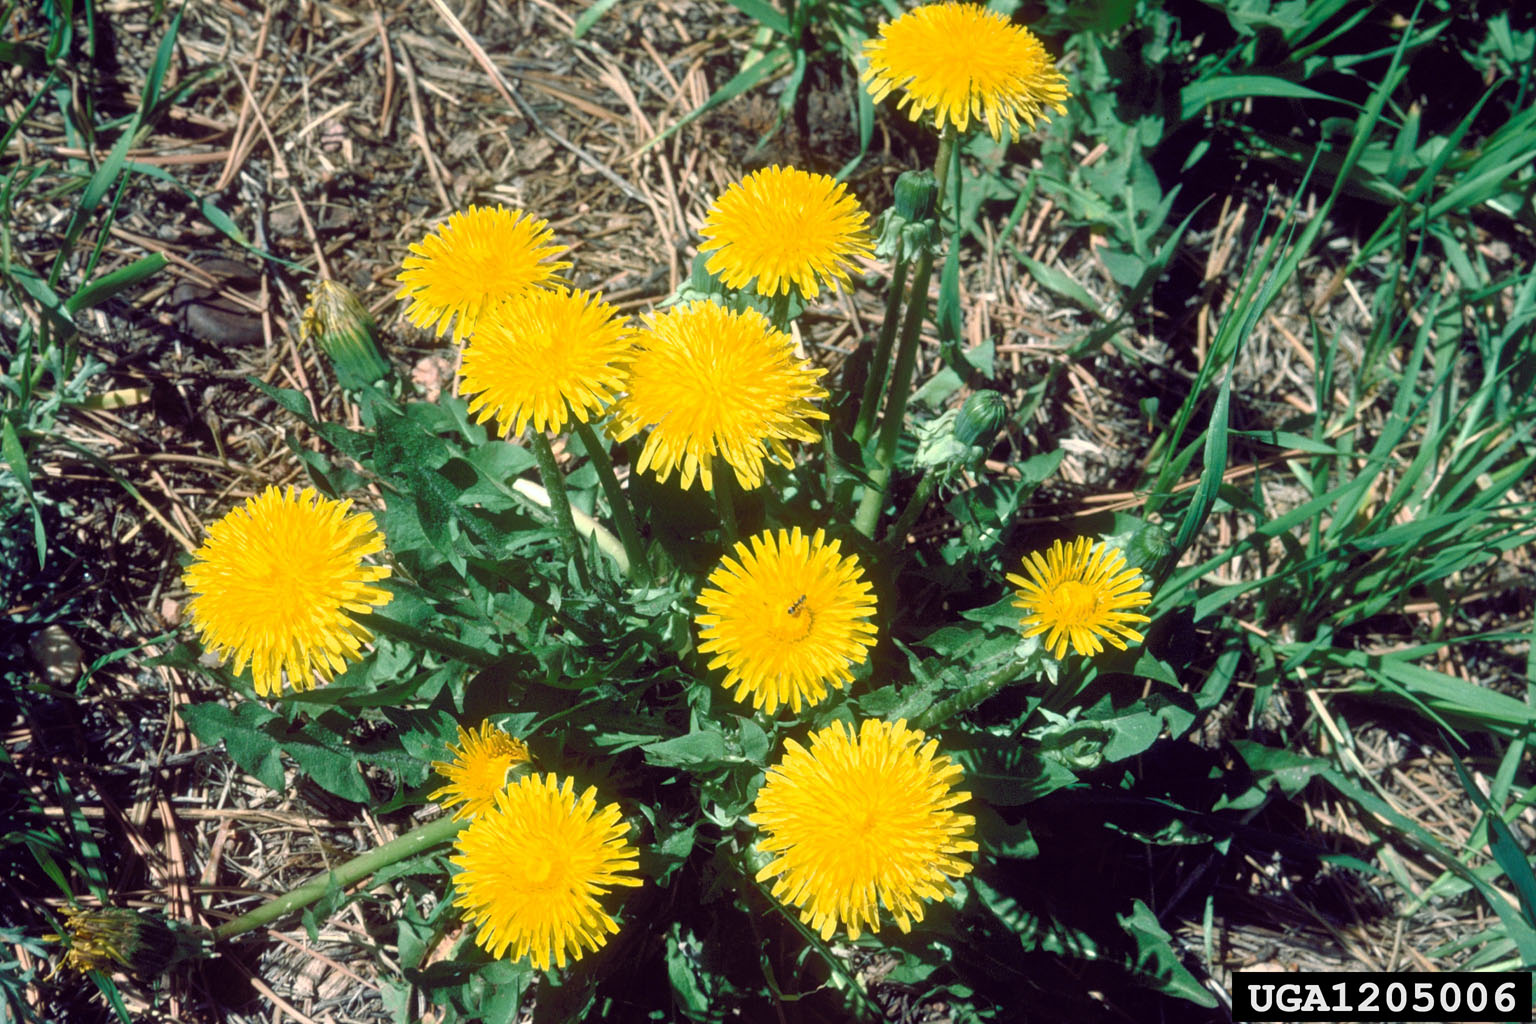 Dandelion flowers. Dave Powell, USDA Forest Service (retired), Bugwood.org. Shared under a Creative Commons license (CC BY 3.0).